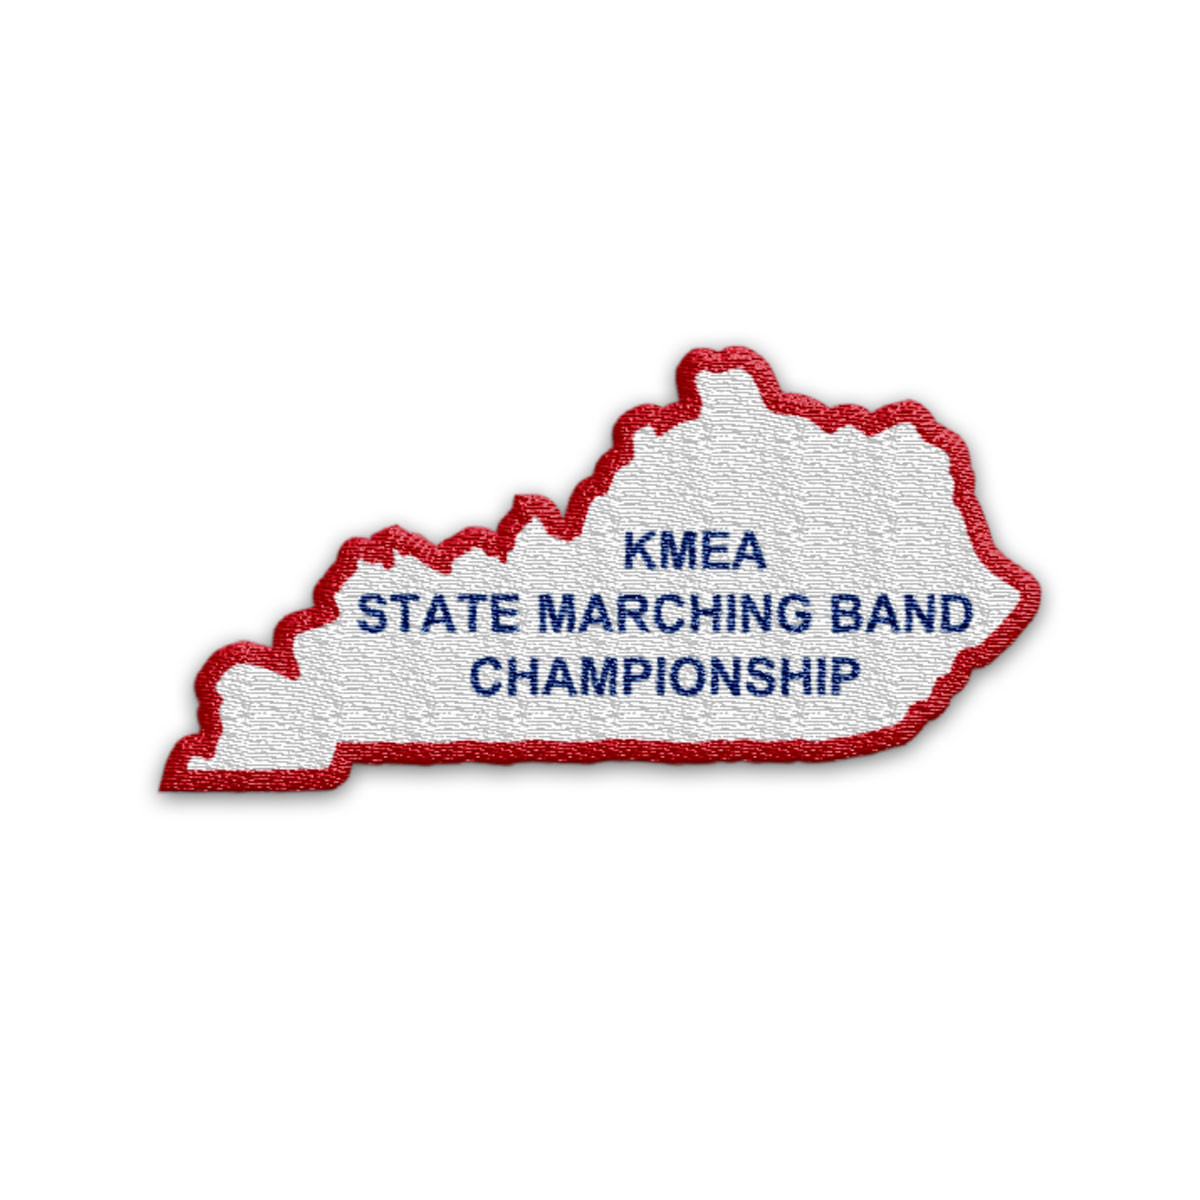 KyMEA Marching Band State Championships Patch